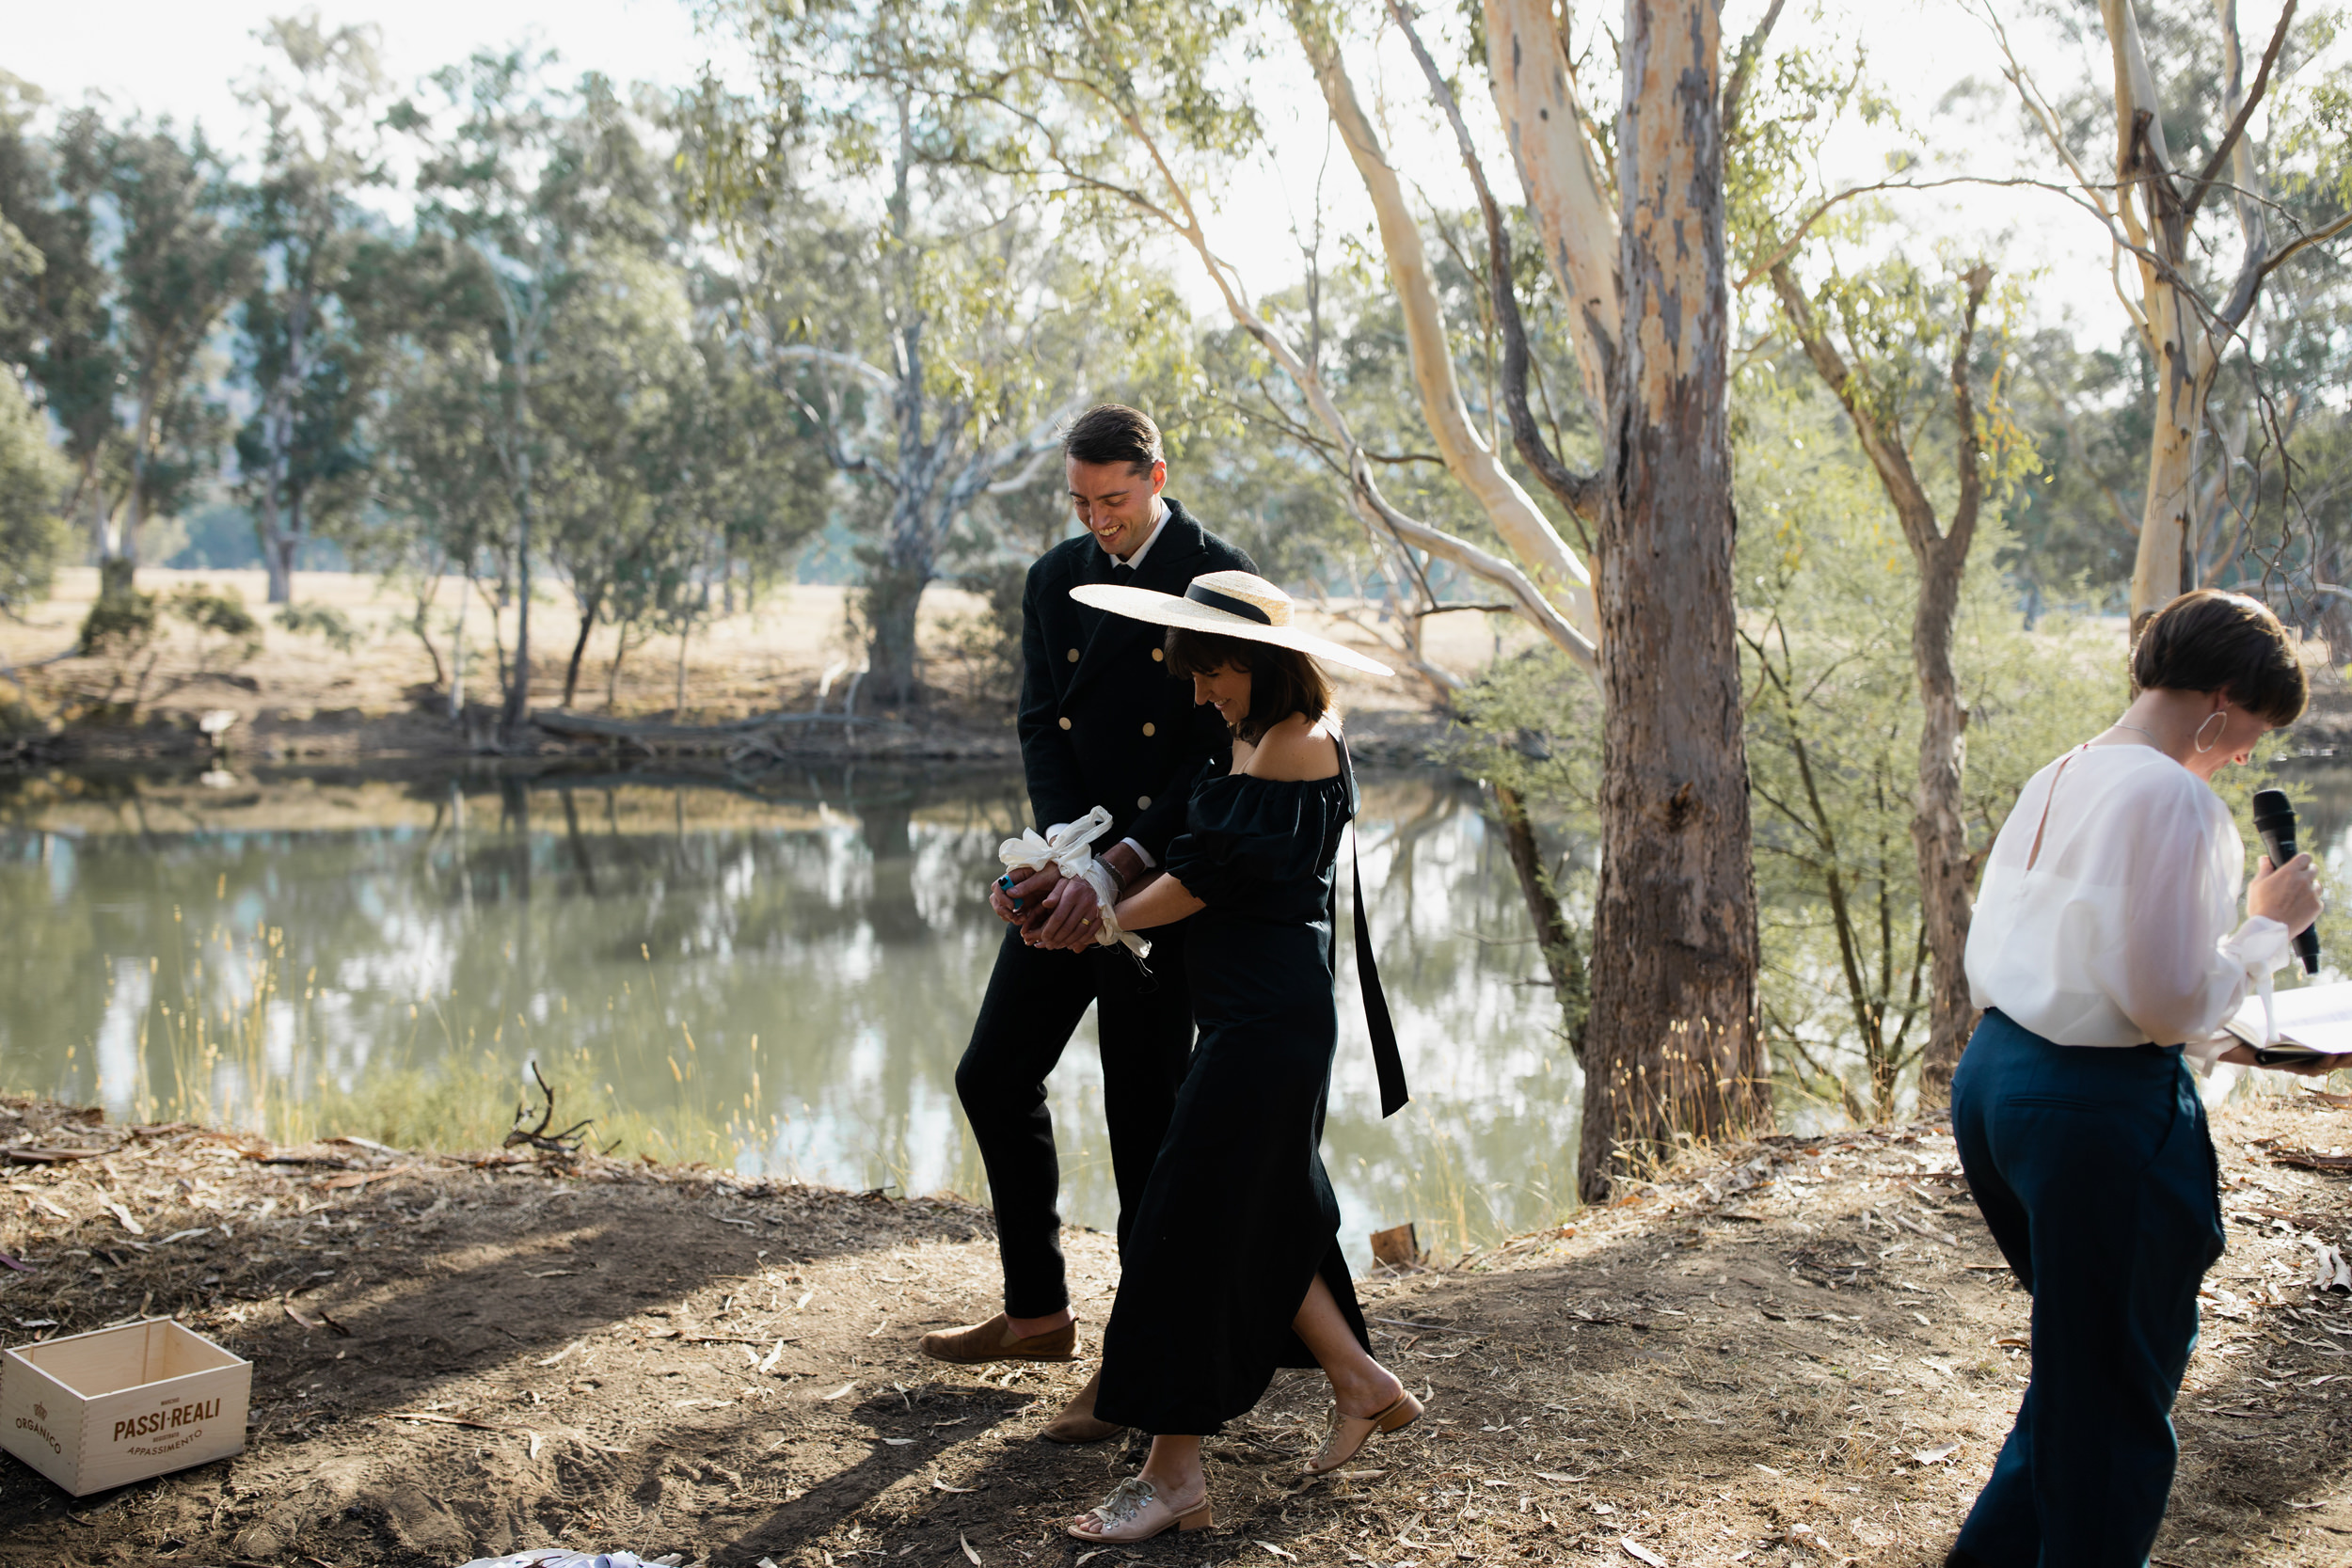 I-Got-You-Babe-Weddings-Claire-Dave-Trawol-VIC-Country-Property-Wedding131.JPG